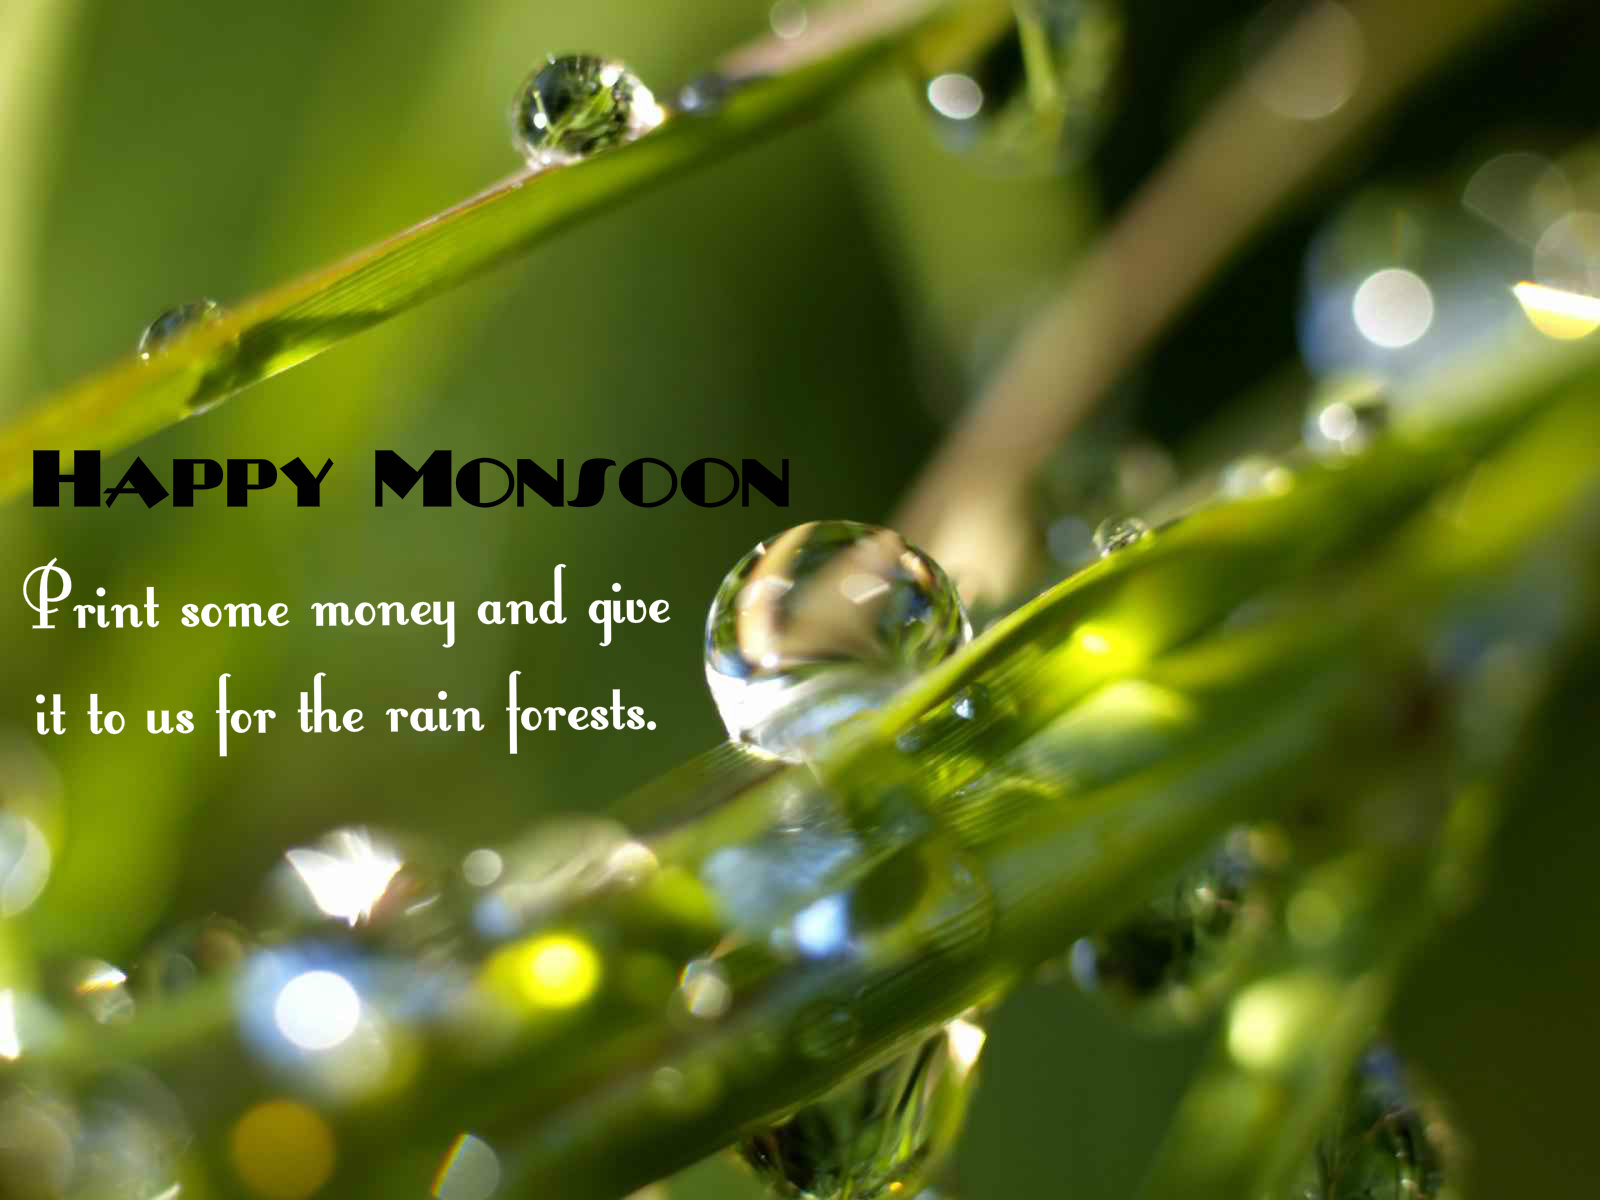 Monsoon Start Now Wishes Wallpaper Images Download Aajkalfun